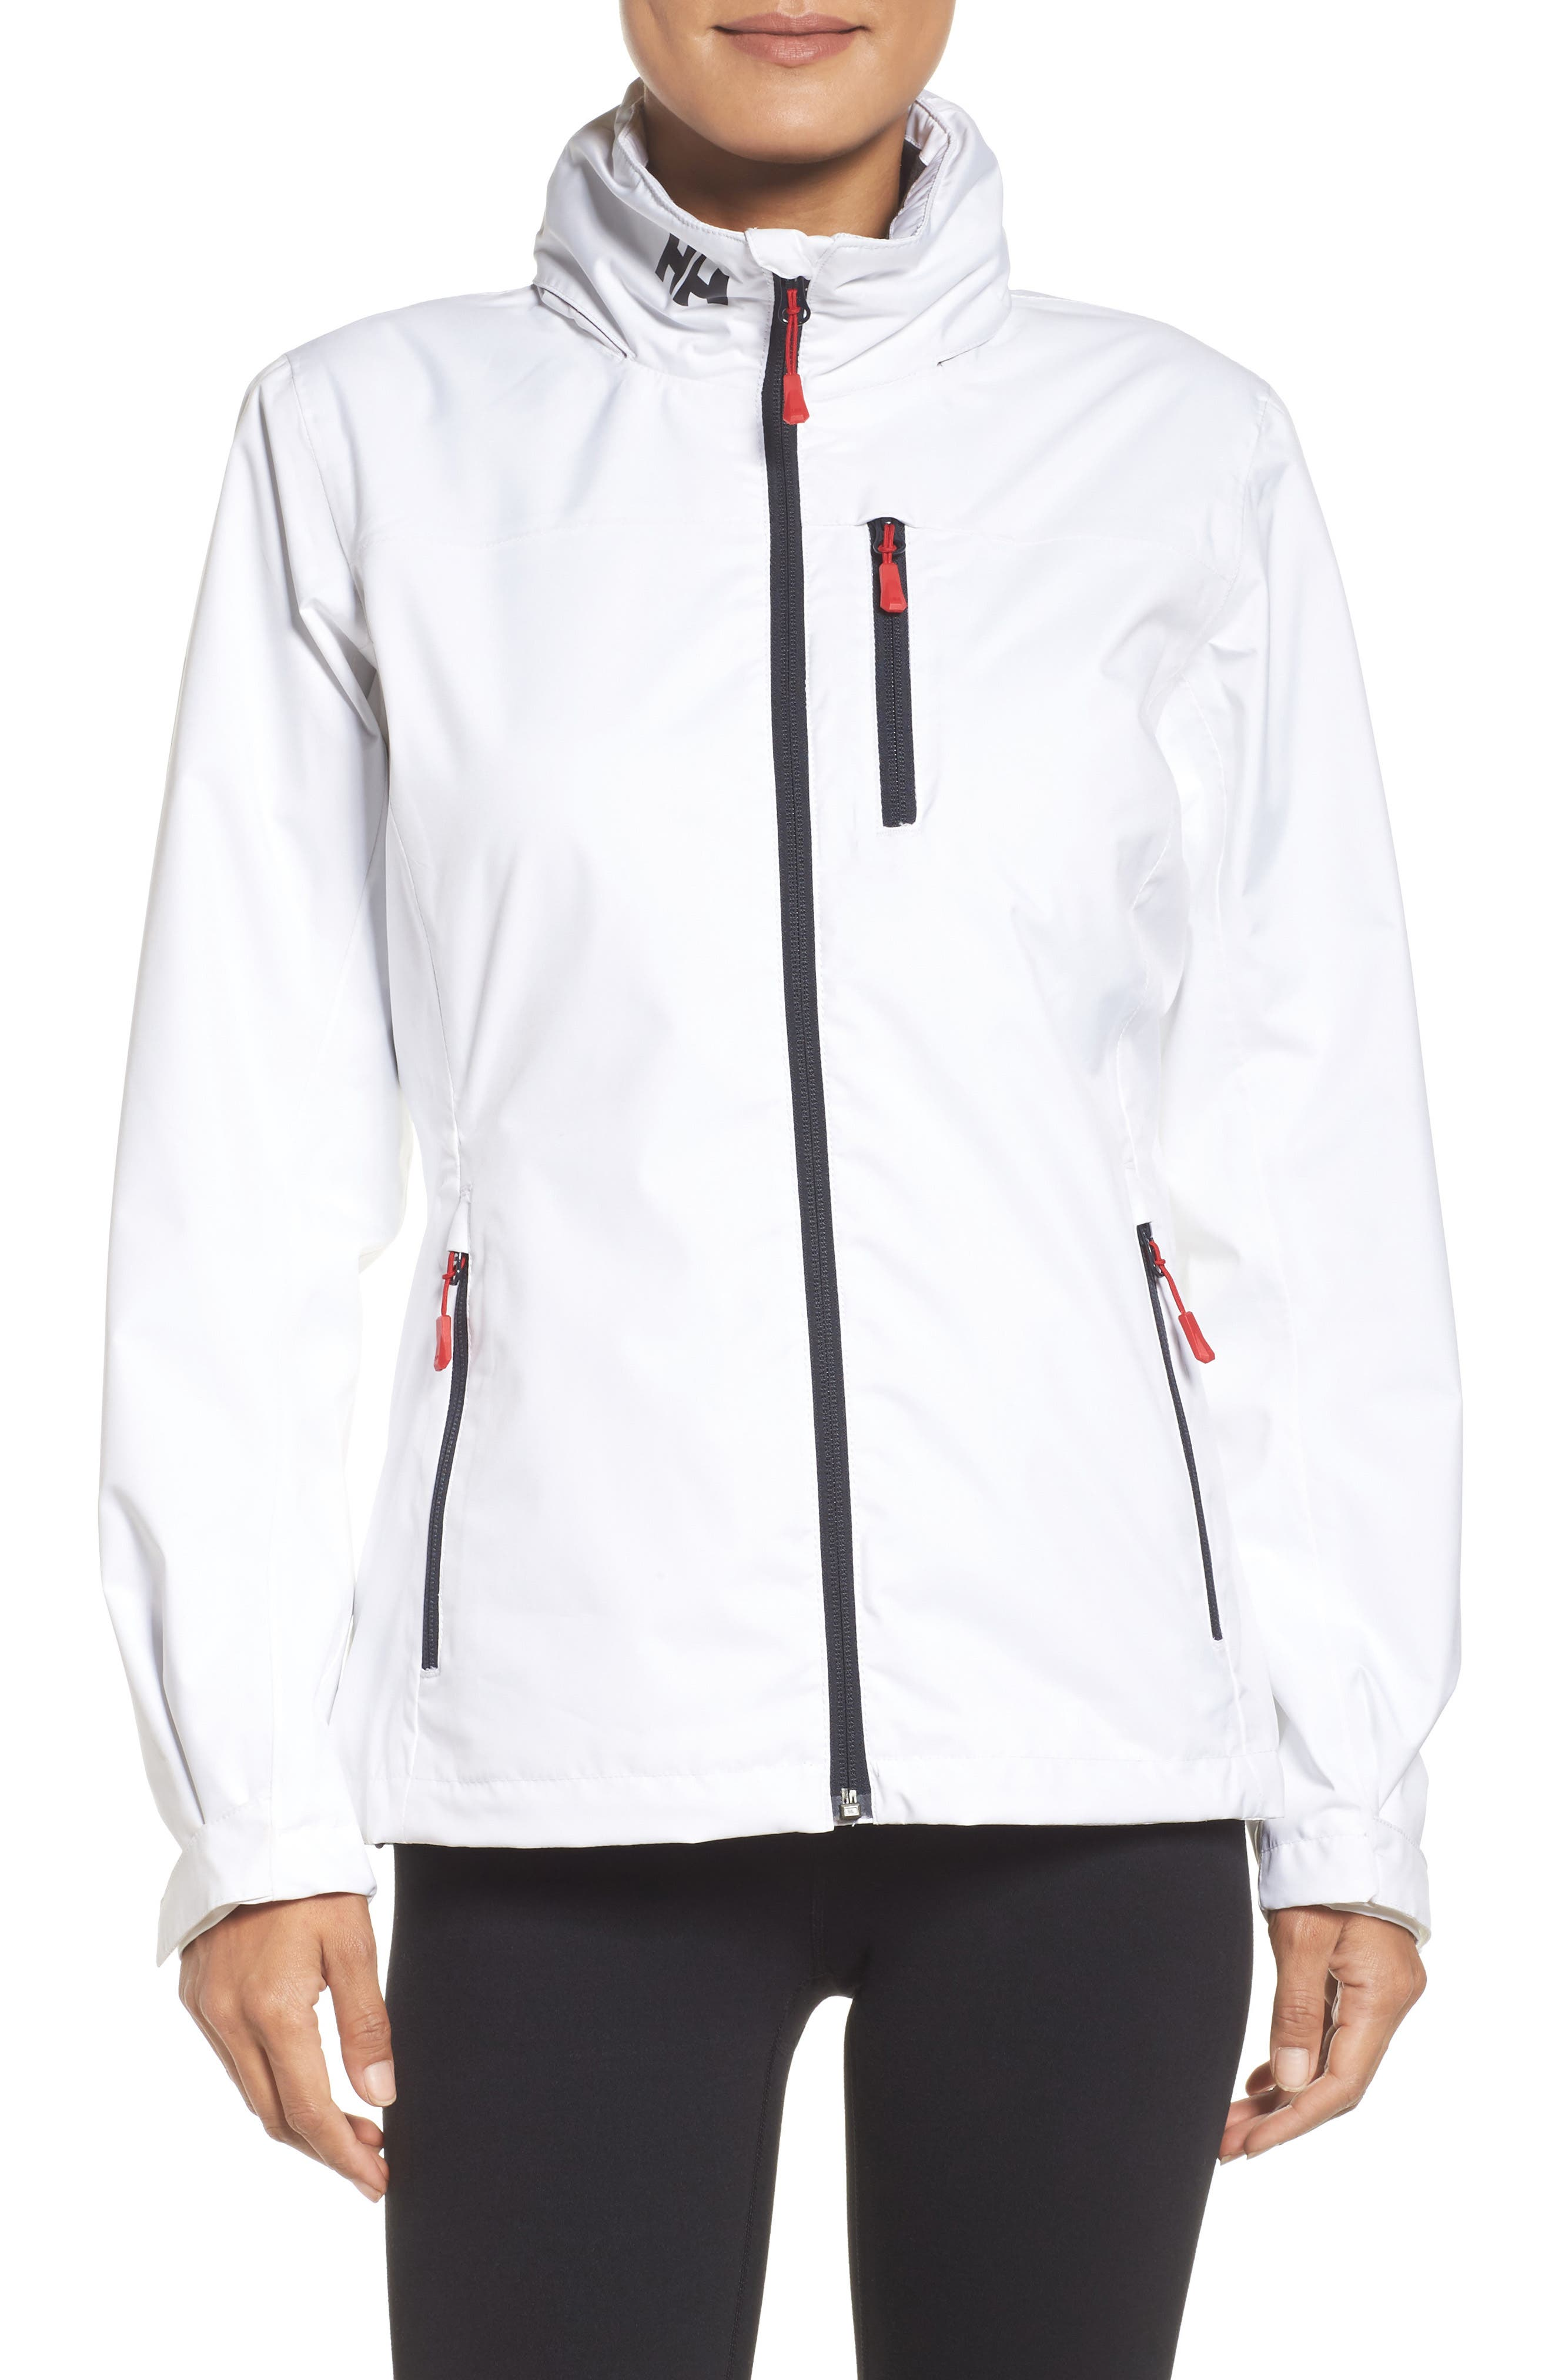 Alternate Image 1 Selected - Helly Hansen Crew Waterproof Jacket